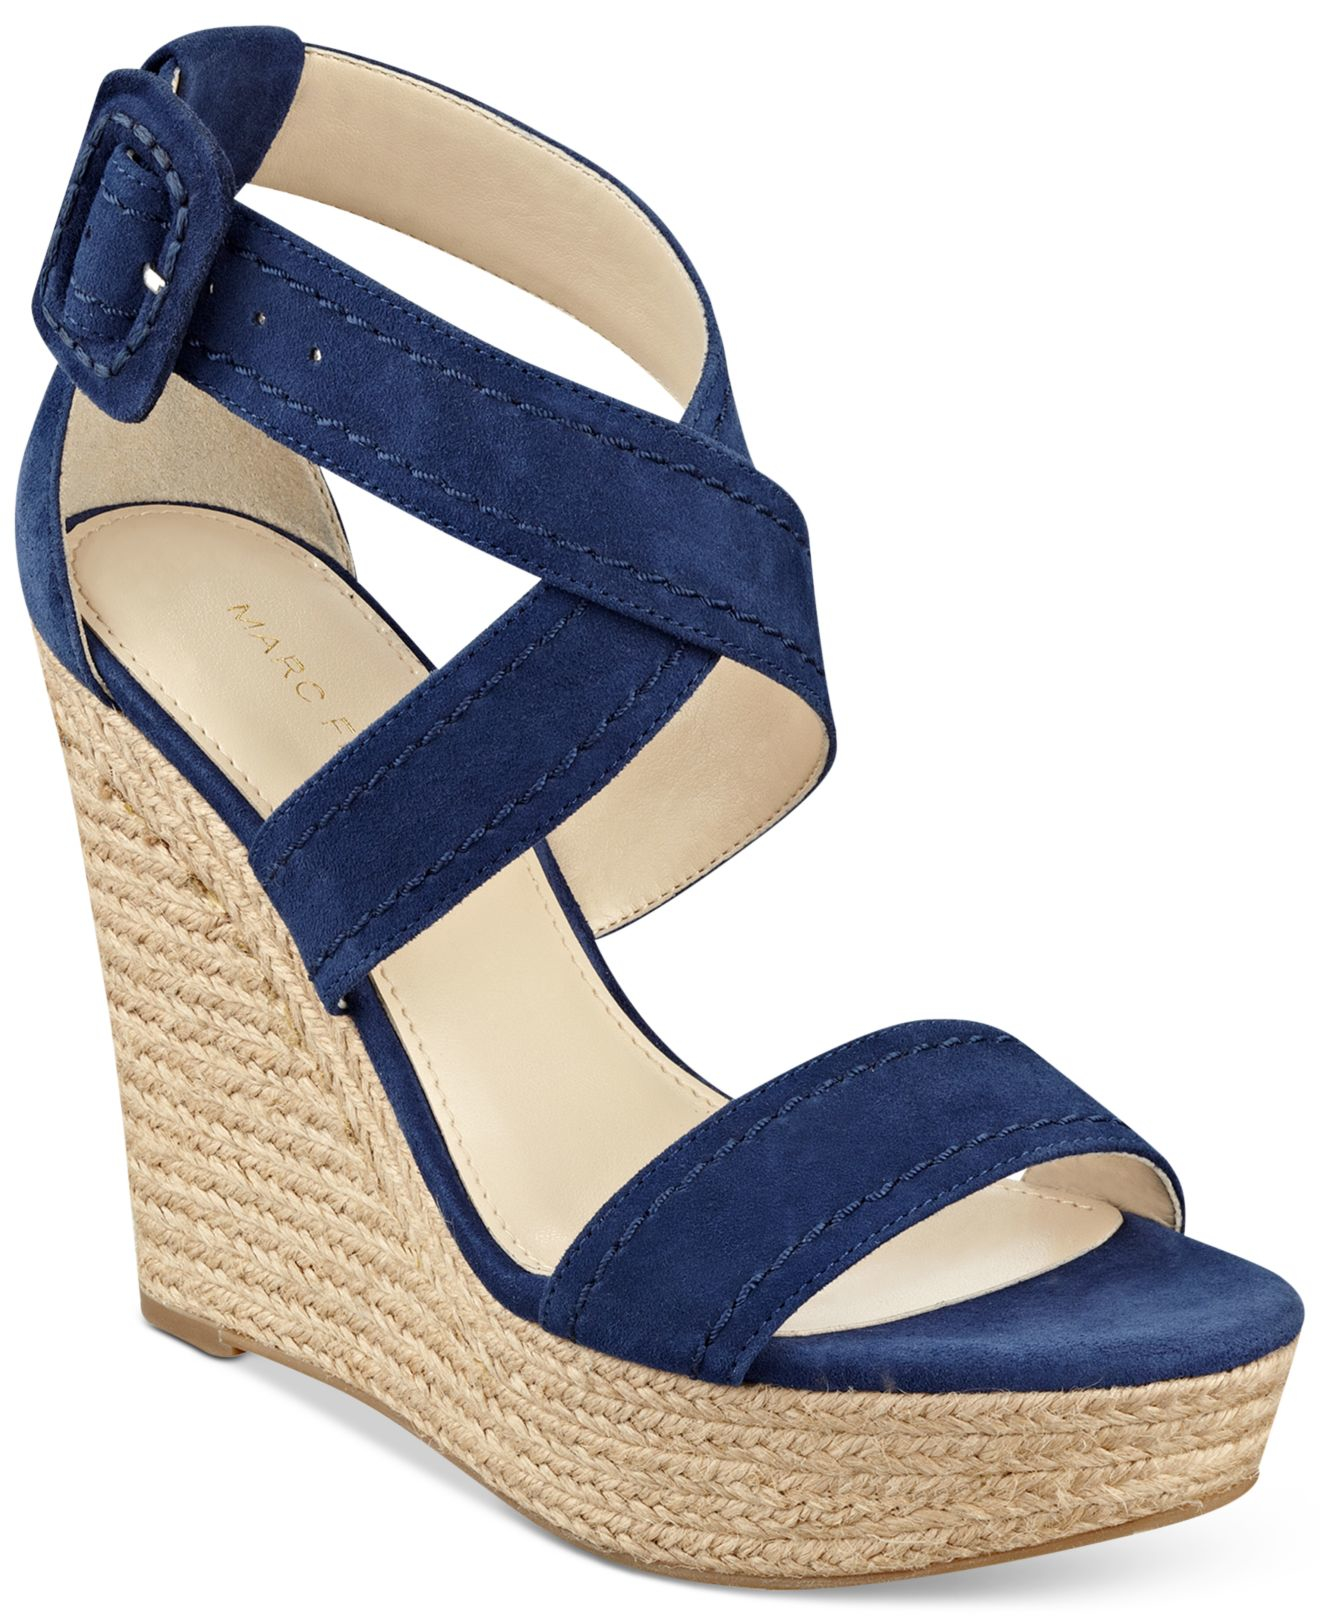 79d5f05e845fbd Lyst - Marc Fisher Haely Platform Wedge Sandals in Blue